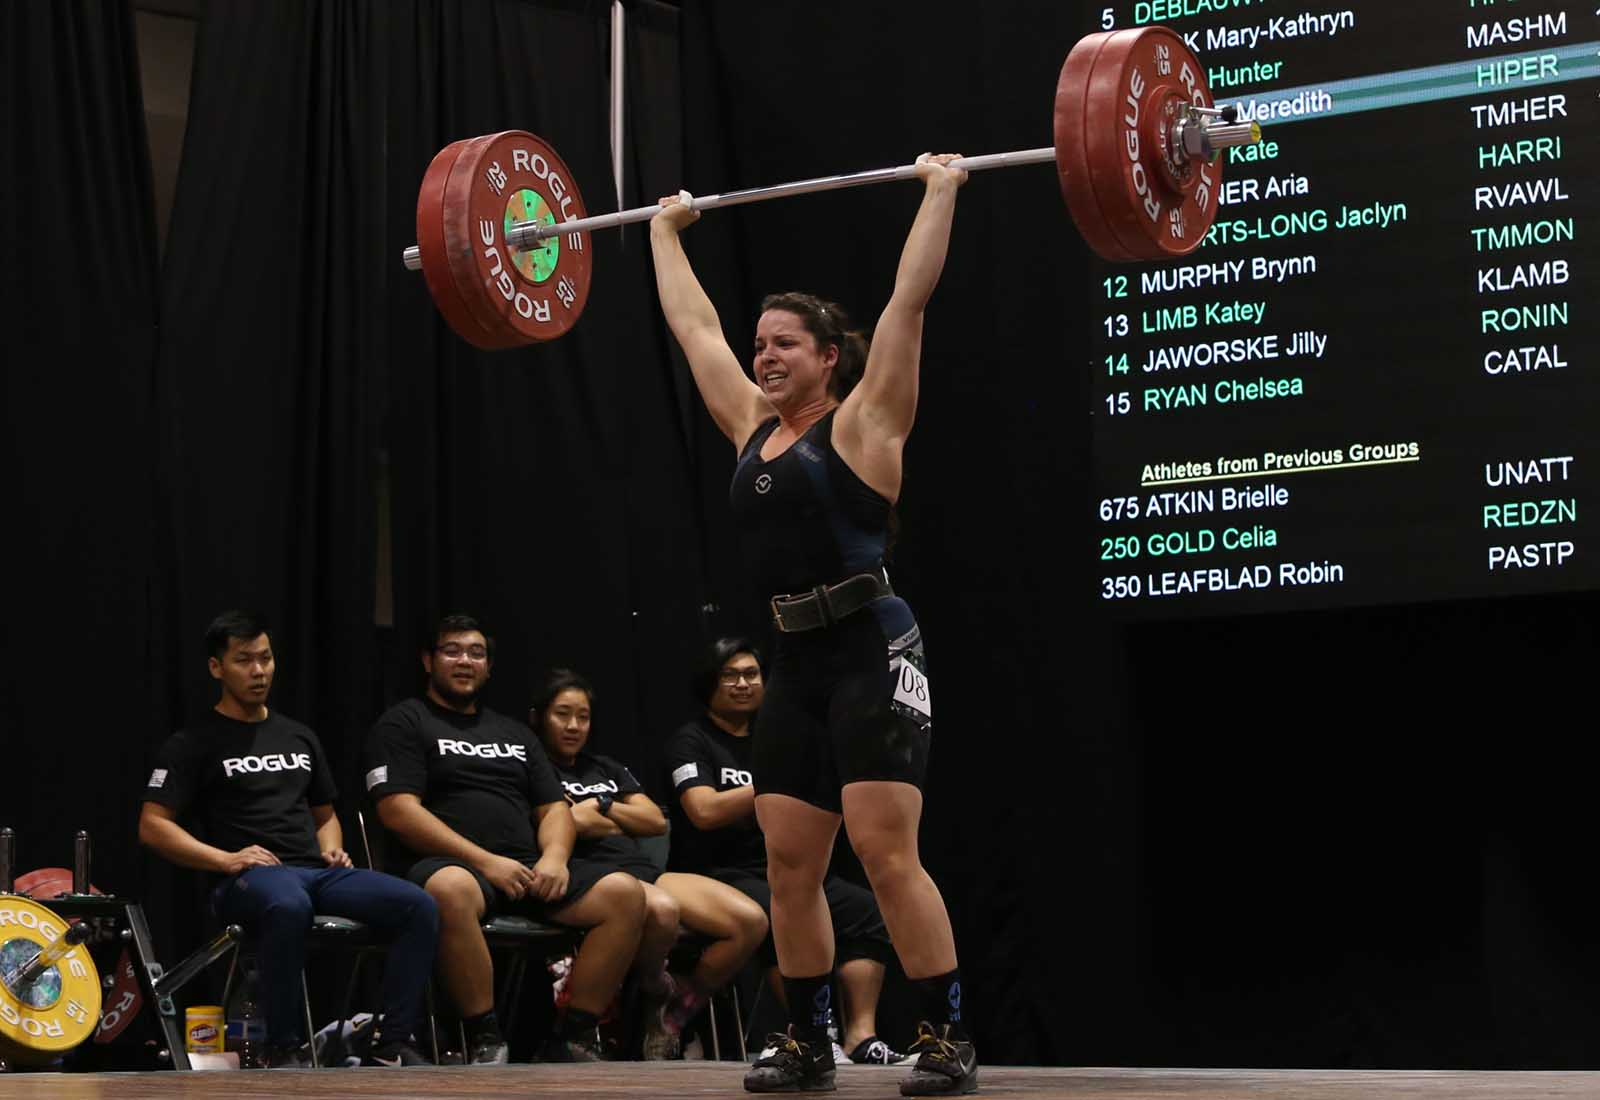 Meredith Alwine lifts 125 kg (275 lbs) during a clean and jerk at the 2017 American Open Finals in Anaheim, California, December 2017.